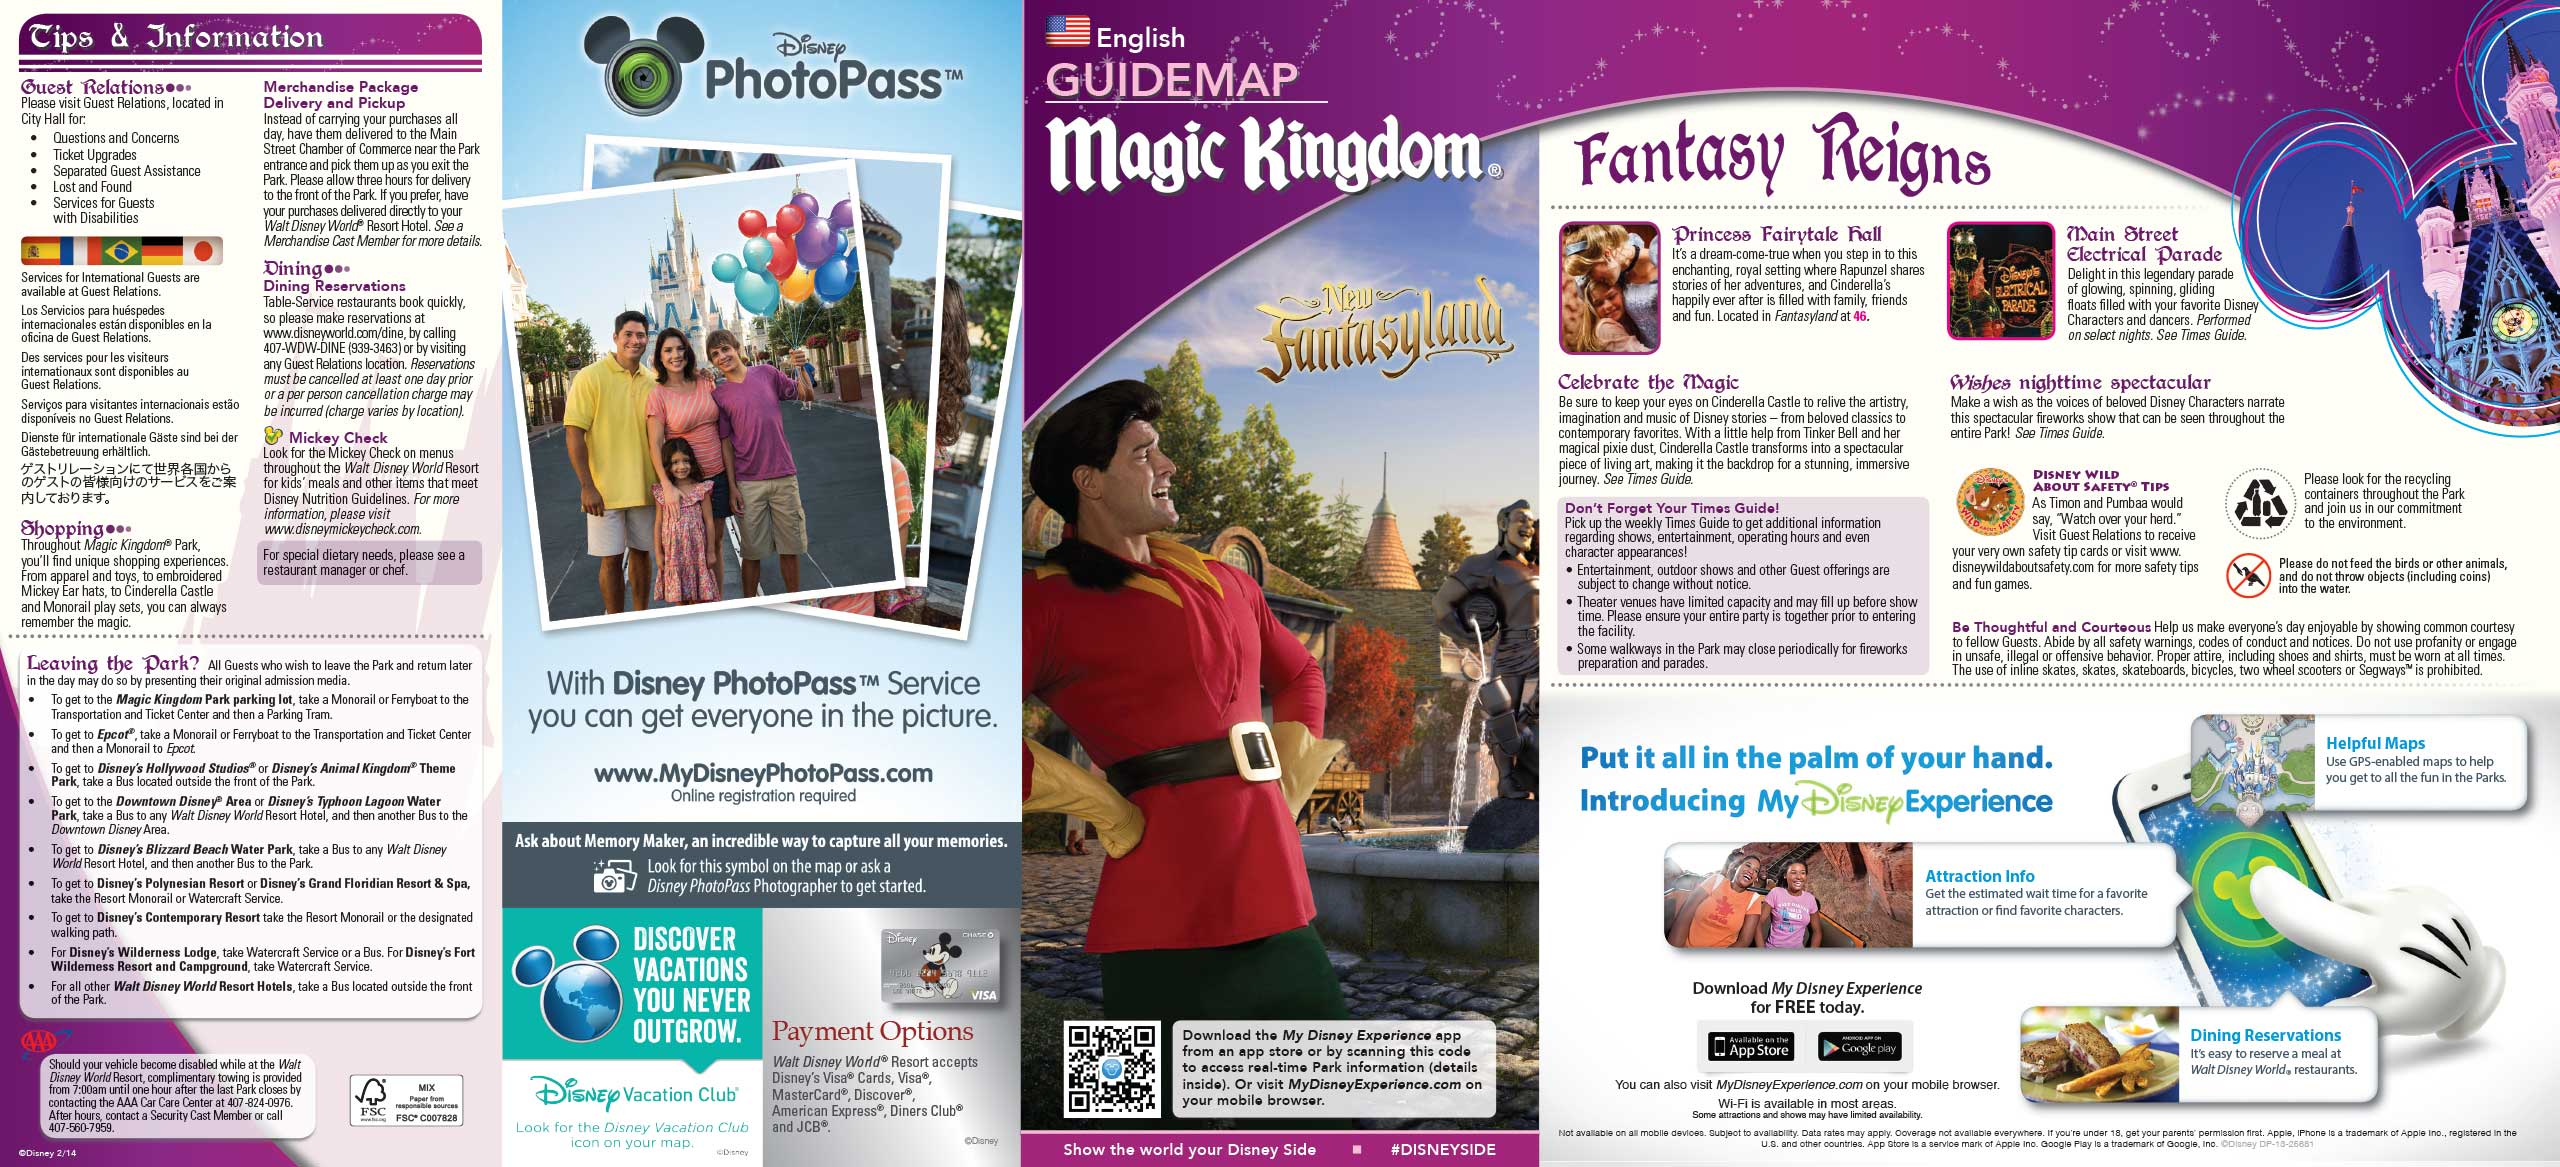 2014 Walt Disney World Park Maps with FastPass+ - Photo 4 of 8